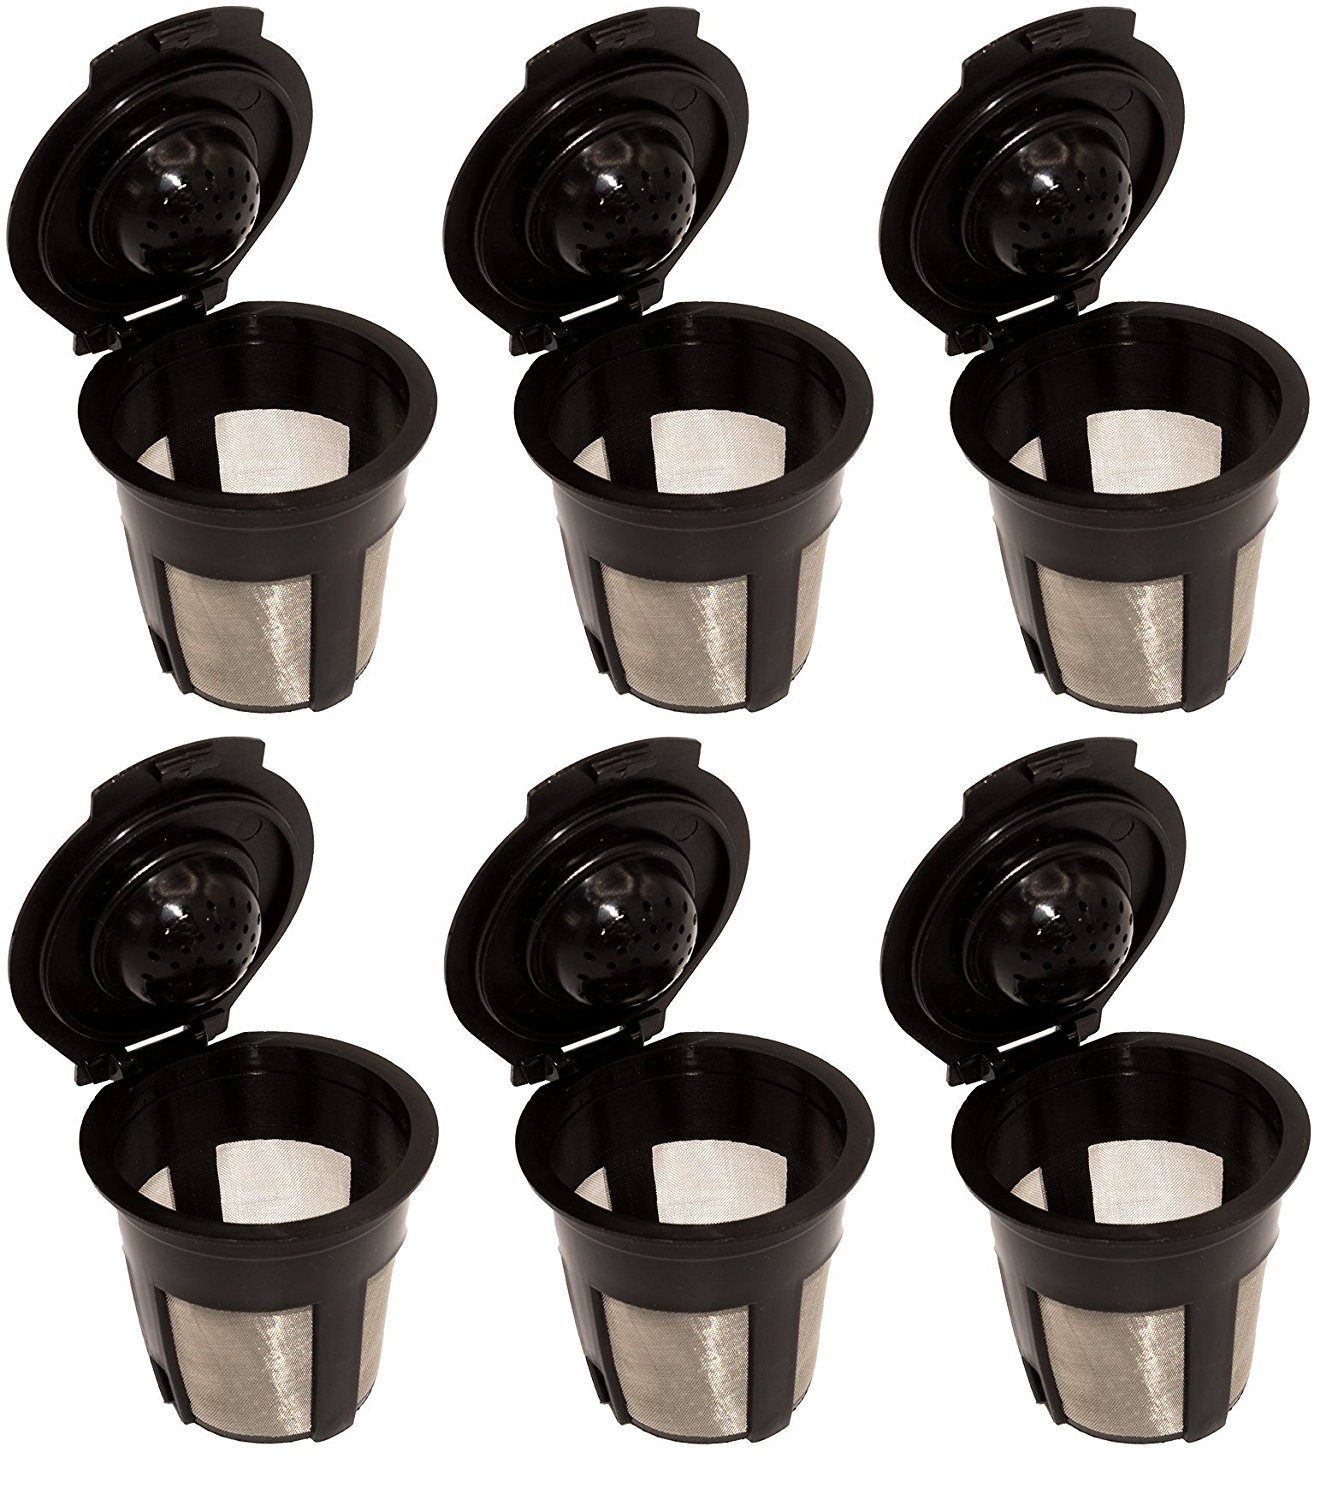 Blendin 6 x Single Reusable Refillable Coffee Pod Filters Compatible with Keurig 1.0 K Cup Coffee Makers